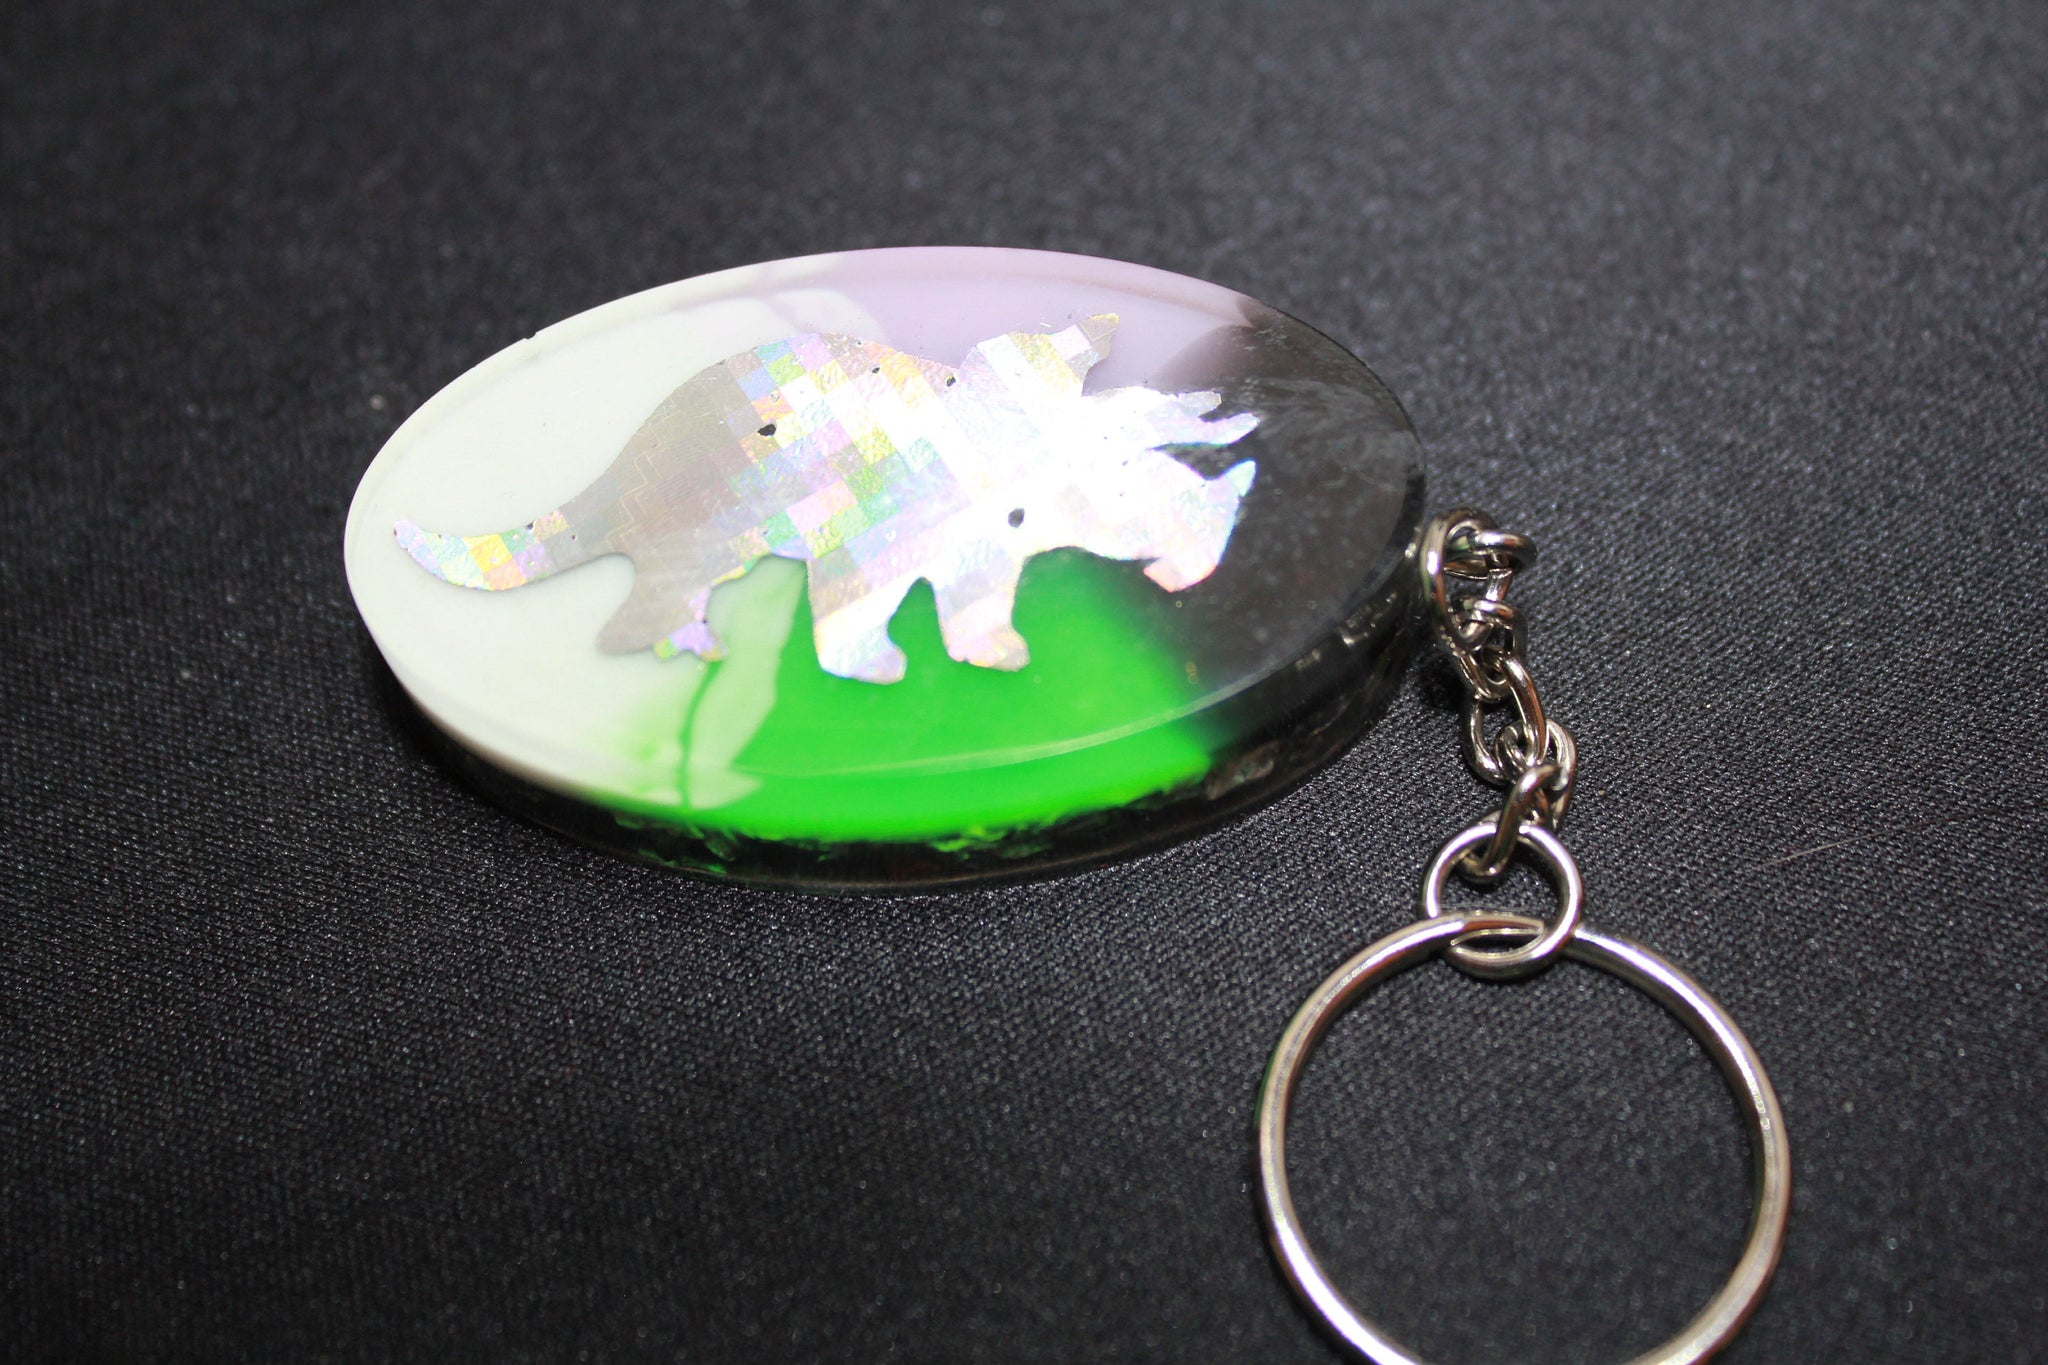 EMF Blocker Keychain Pocket Electrical Blocker 2 inch Triceratops on pink yellow and green with shredded steel - Funky Dinosaur